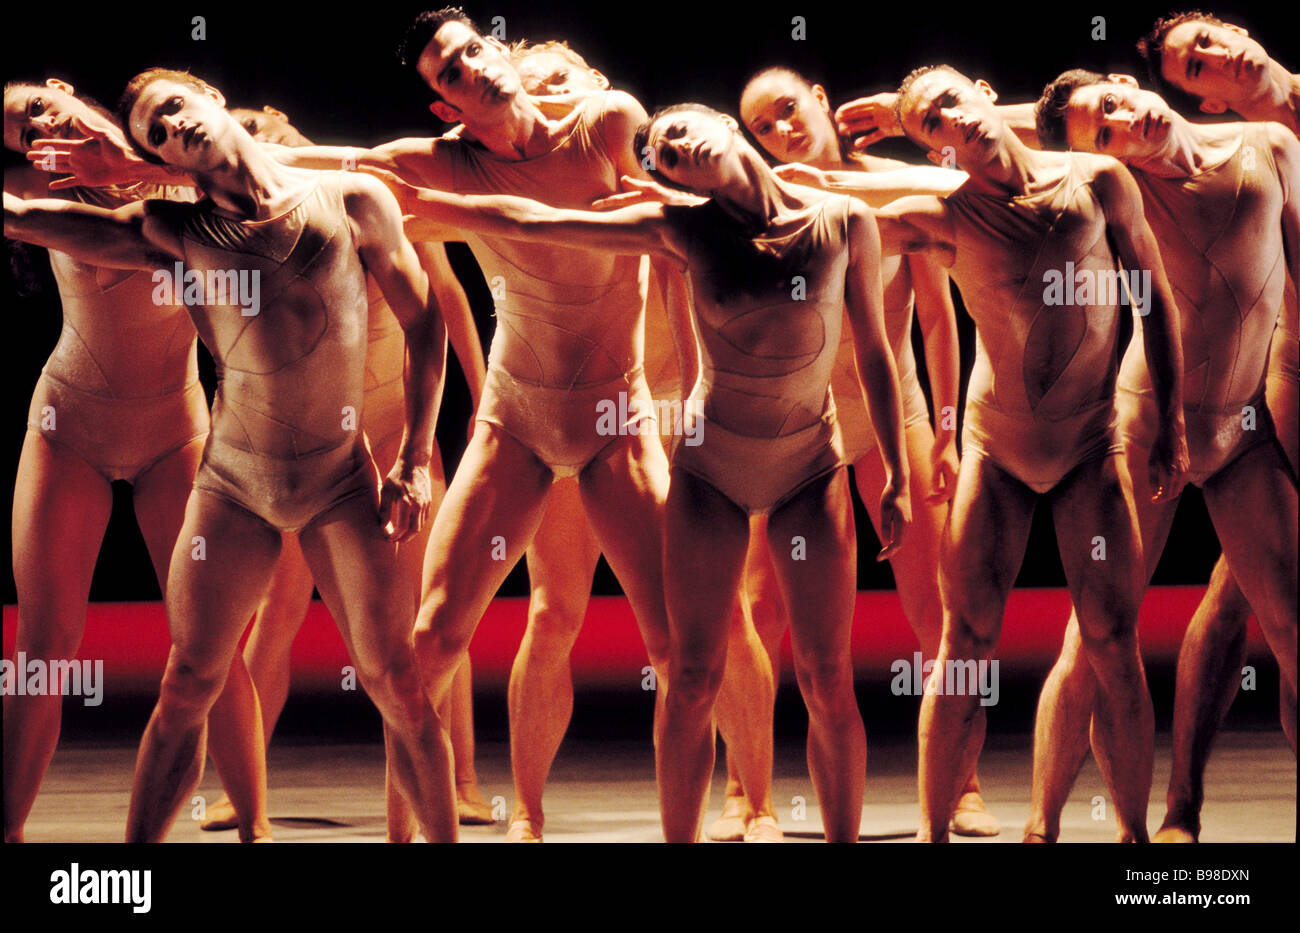 A scene from the ballet Creation presented by the national choreography center Ballet Biarritz France at the 6th Stock Photo